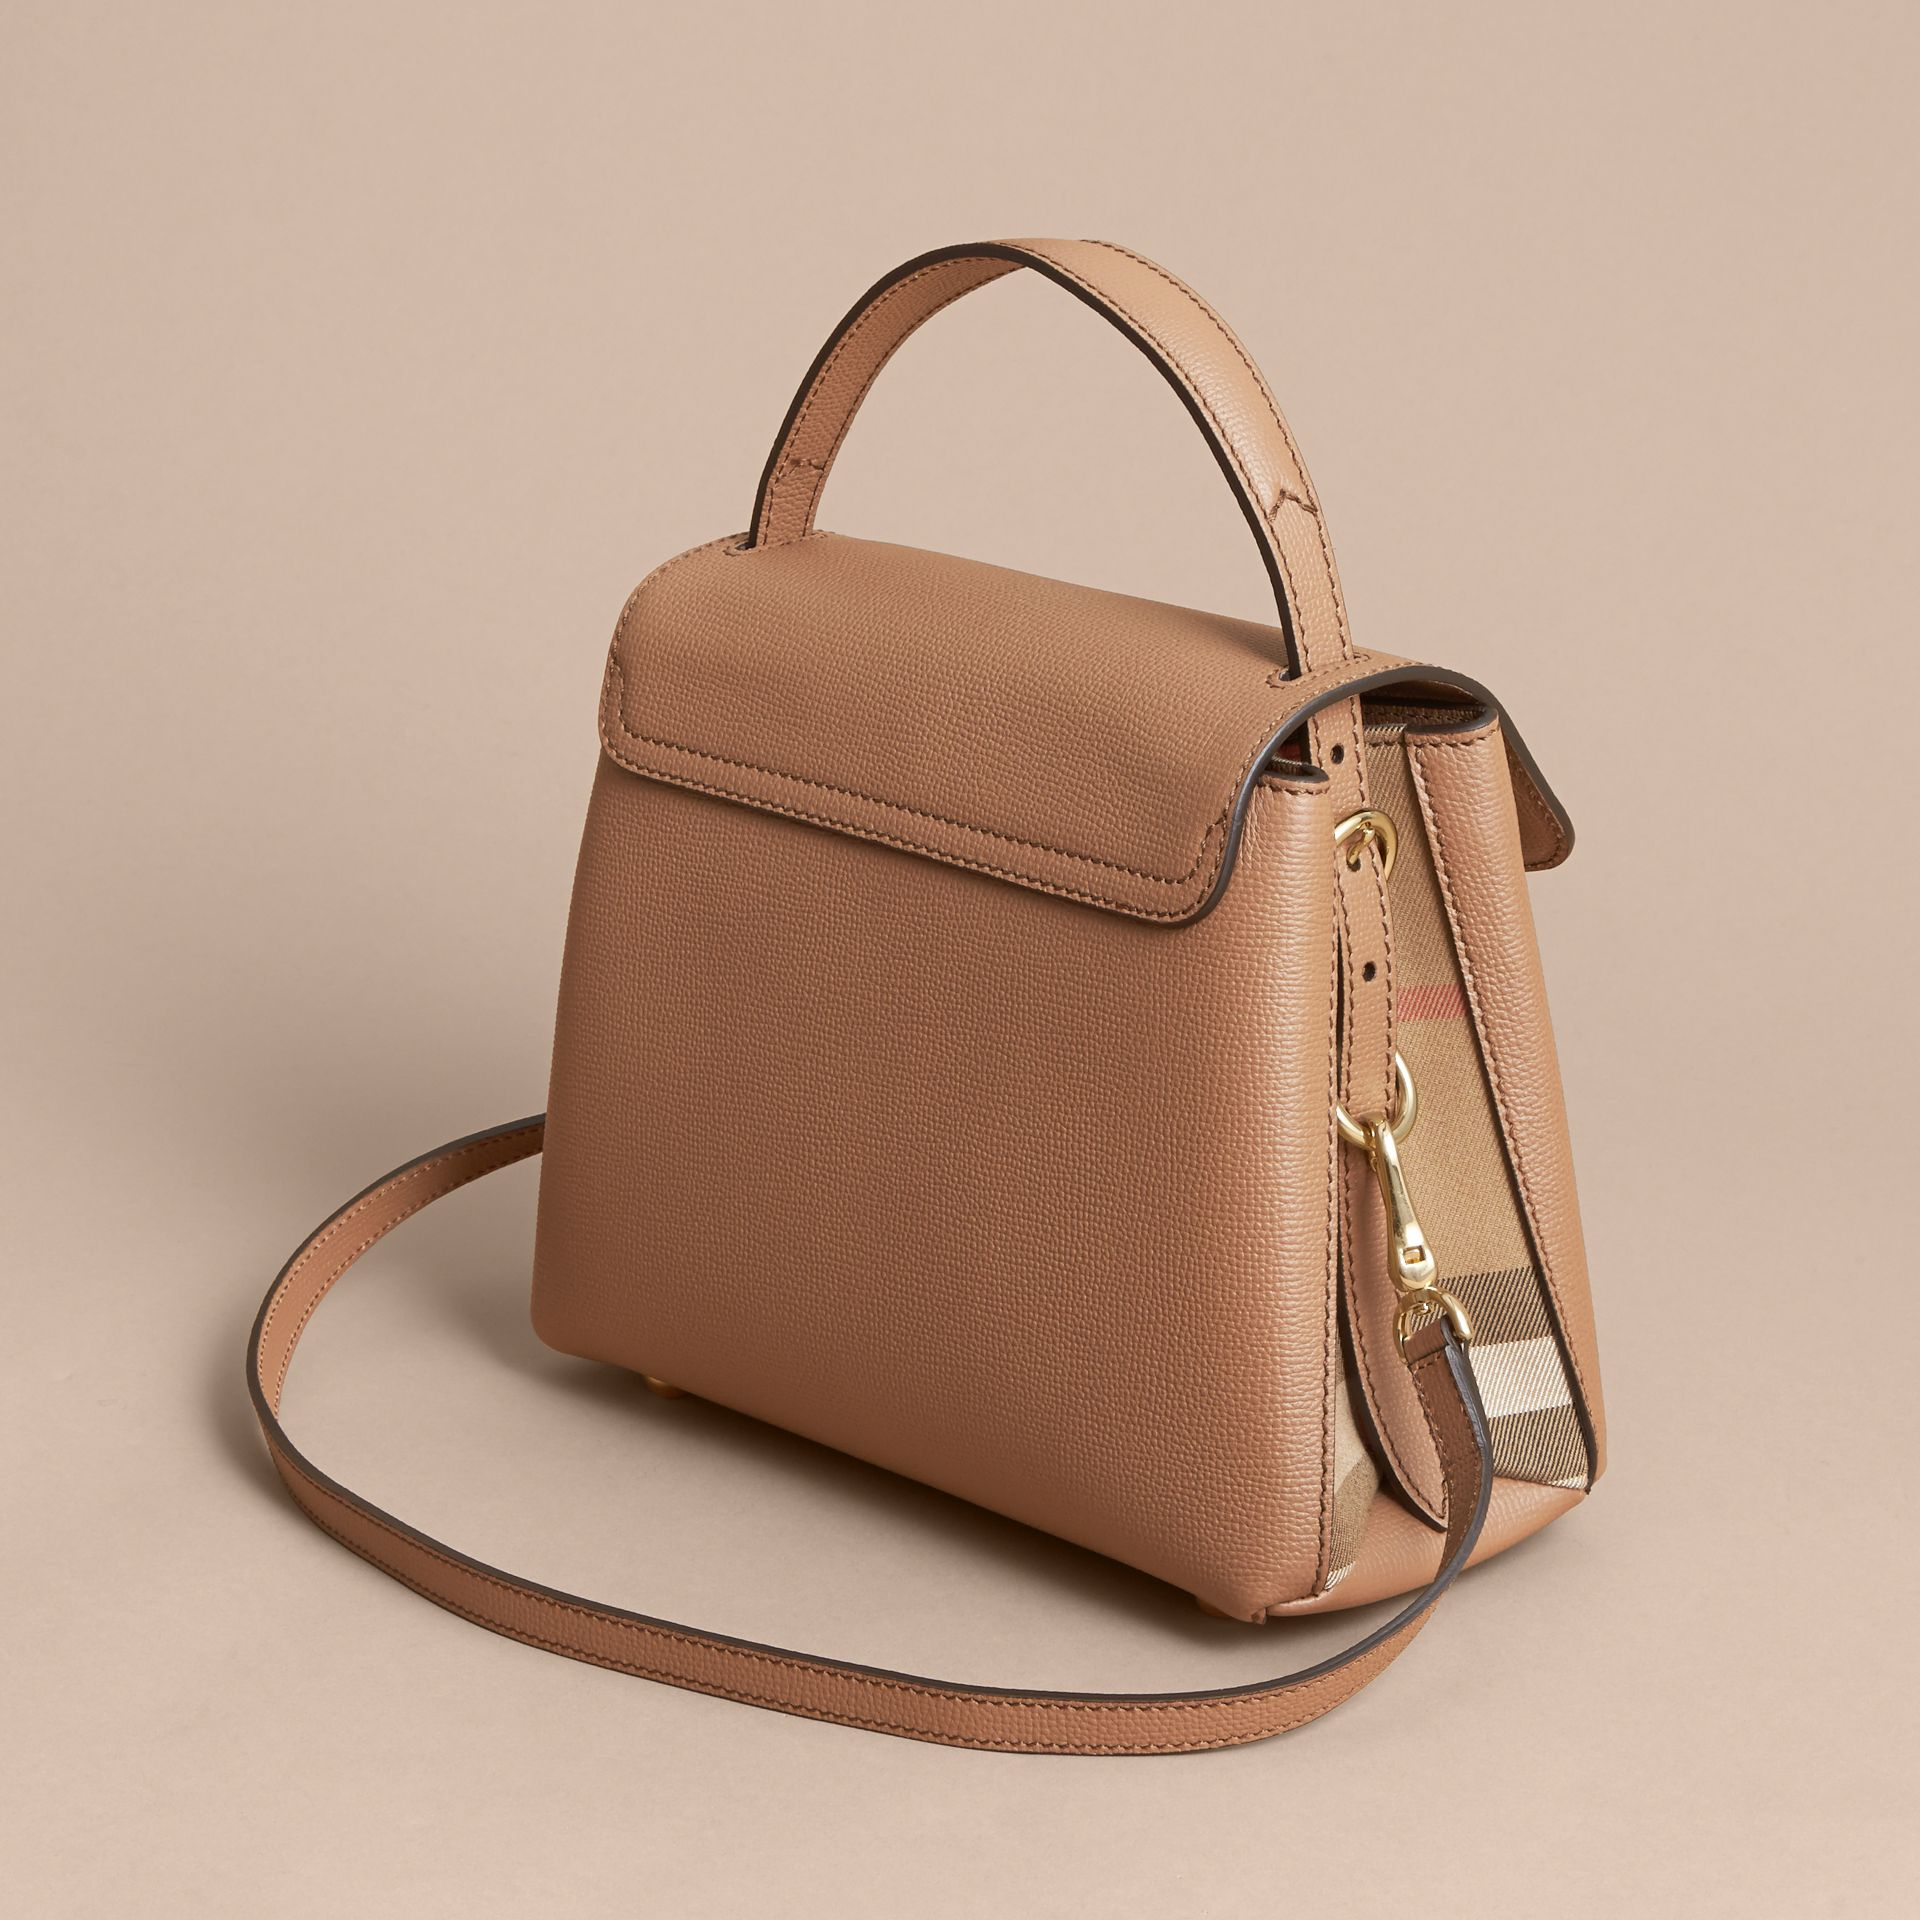 Small Grainy Leather and House Check Tote Bag in Dark Sand - Women | Burberry United Kingdom - gallery image 2